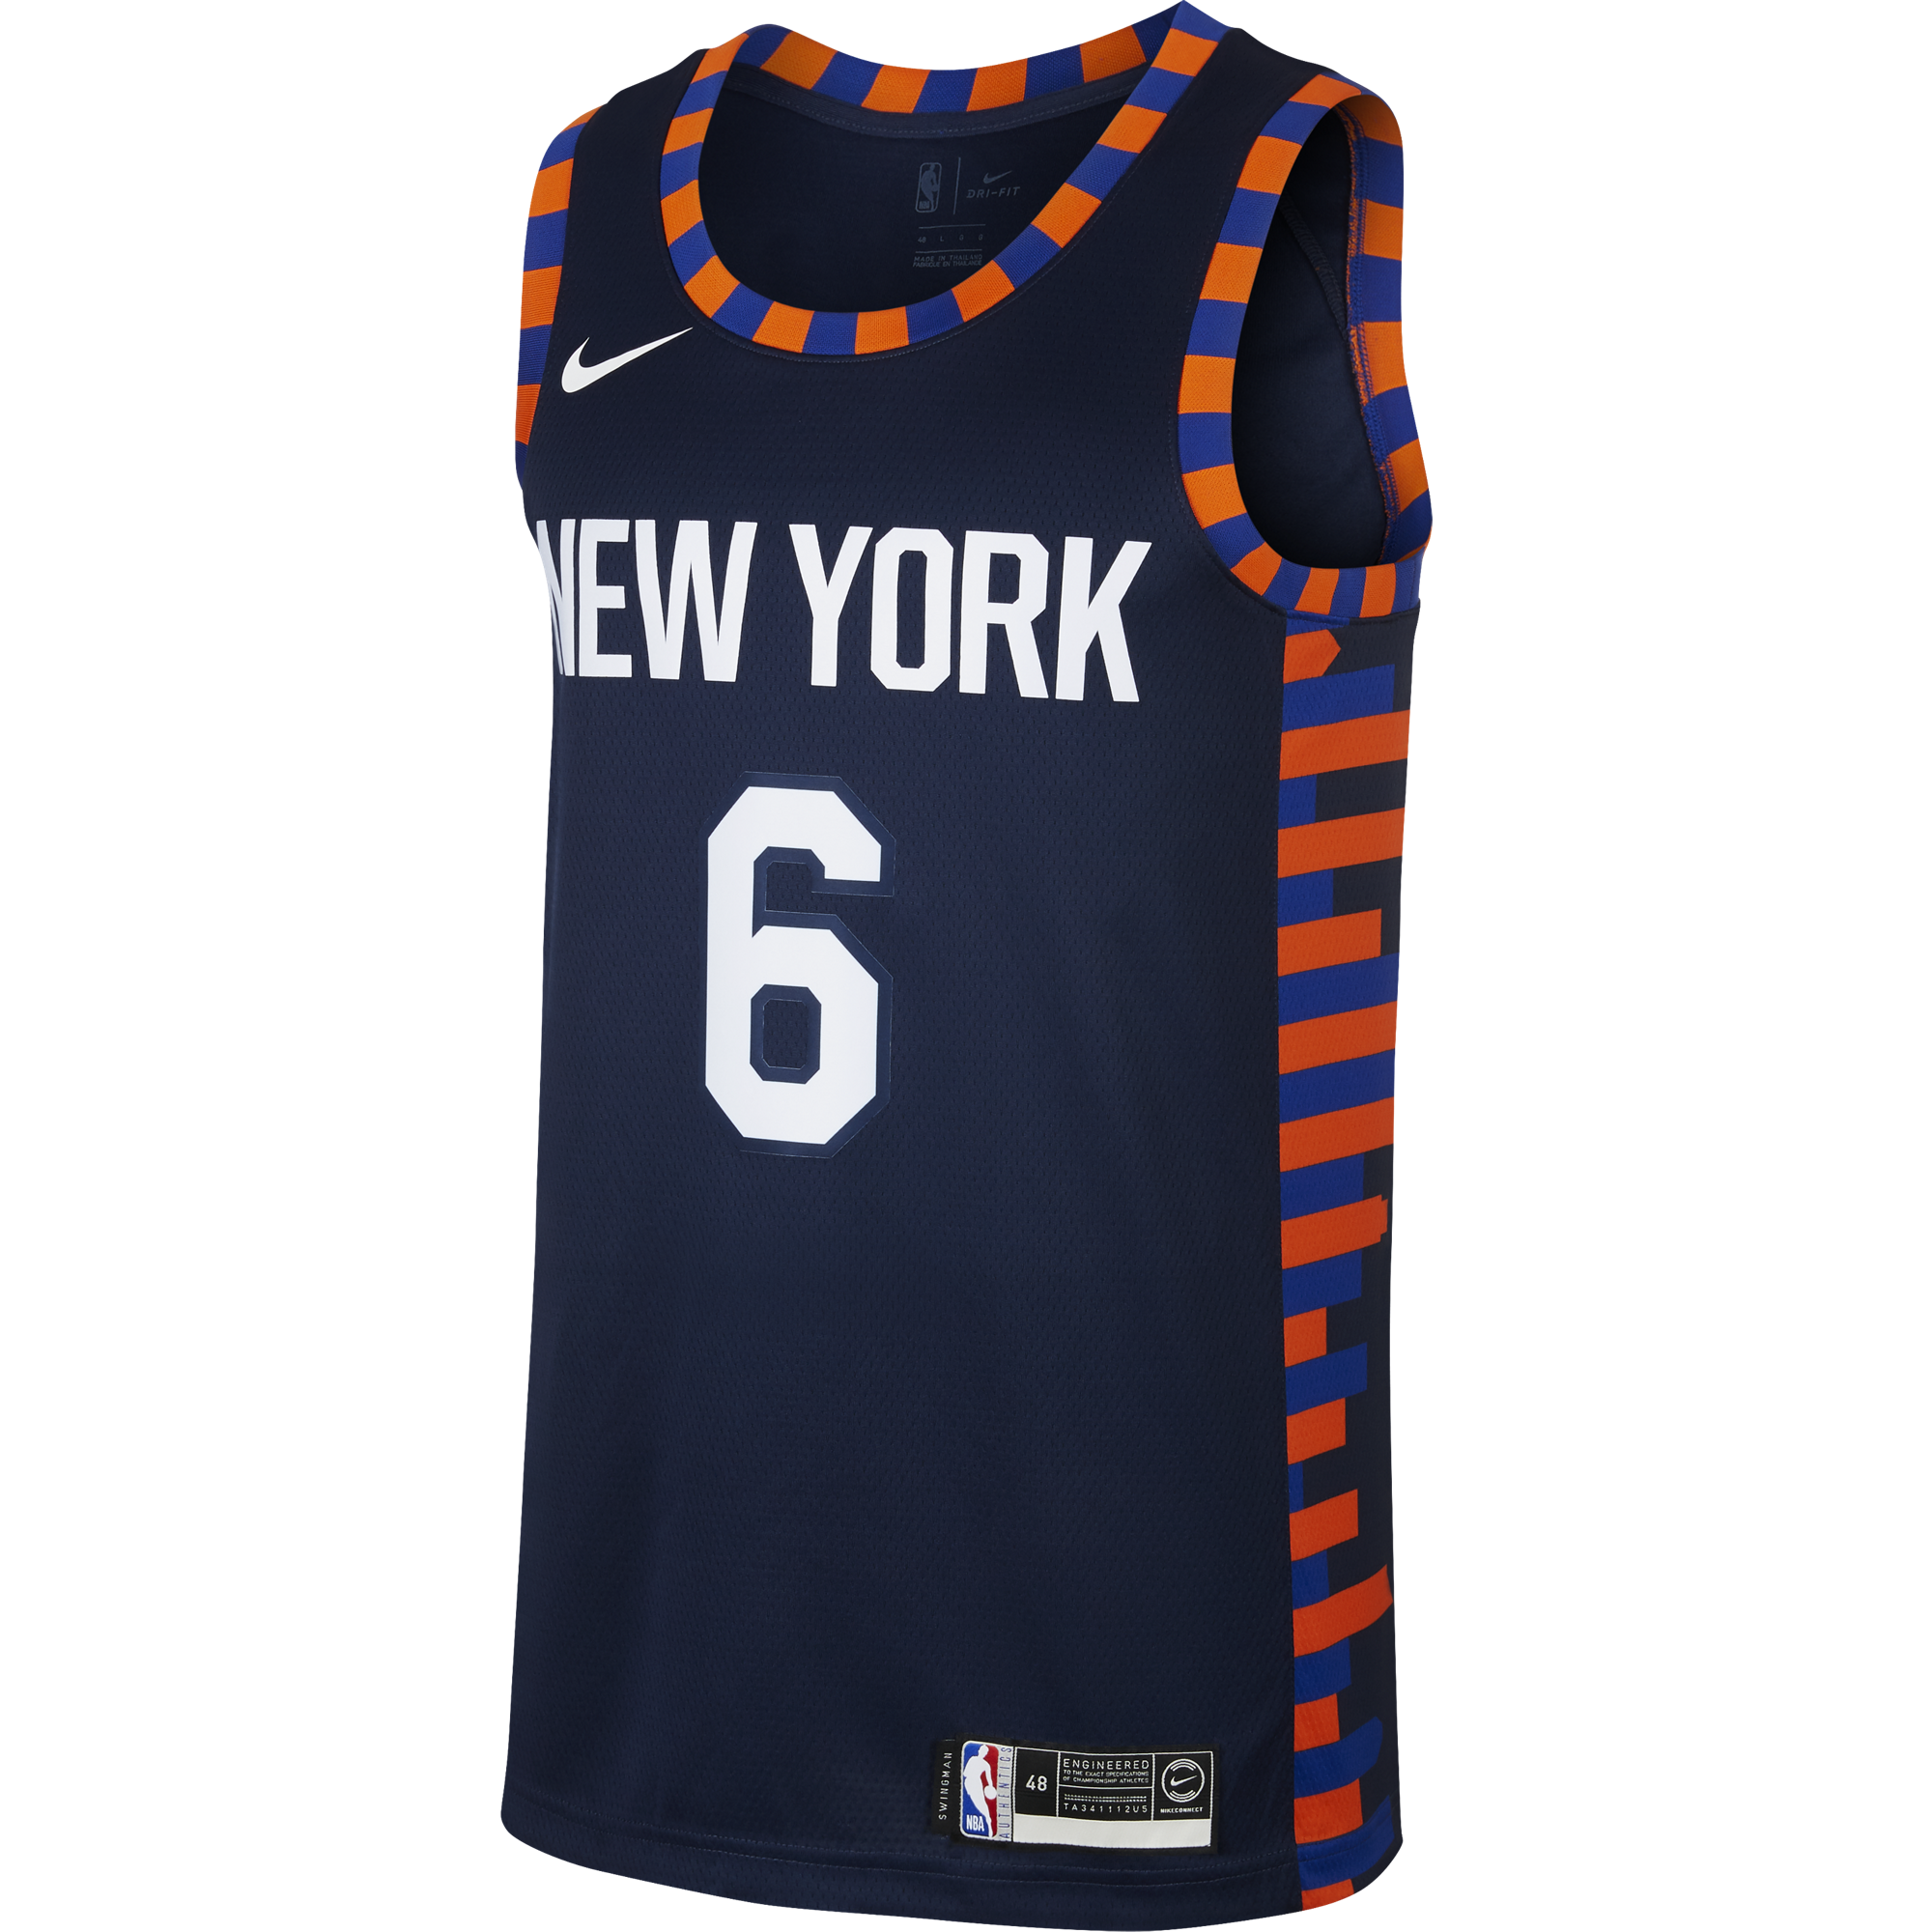 premium selection f5988 88d84 NIKE NBA NEW YORK KNICKS KRISTAPS PORZINGIS SWINGMAN JERSEY ...